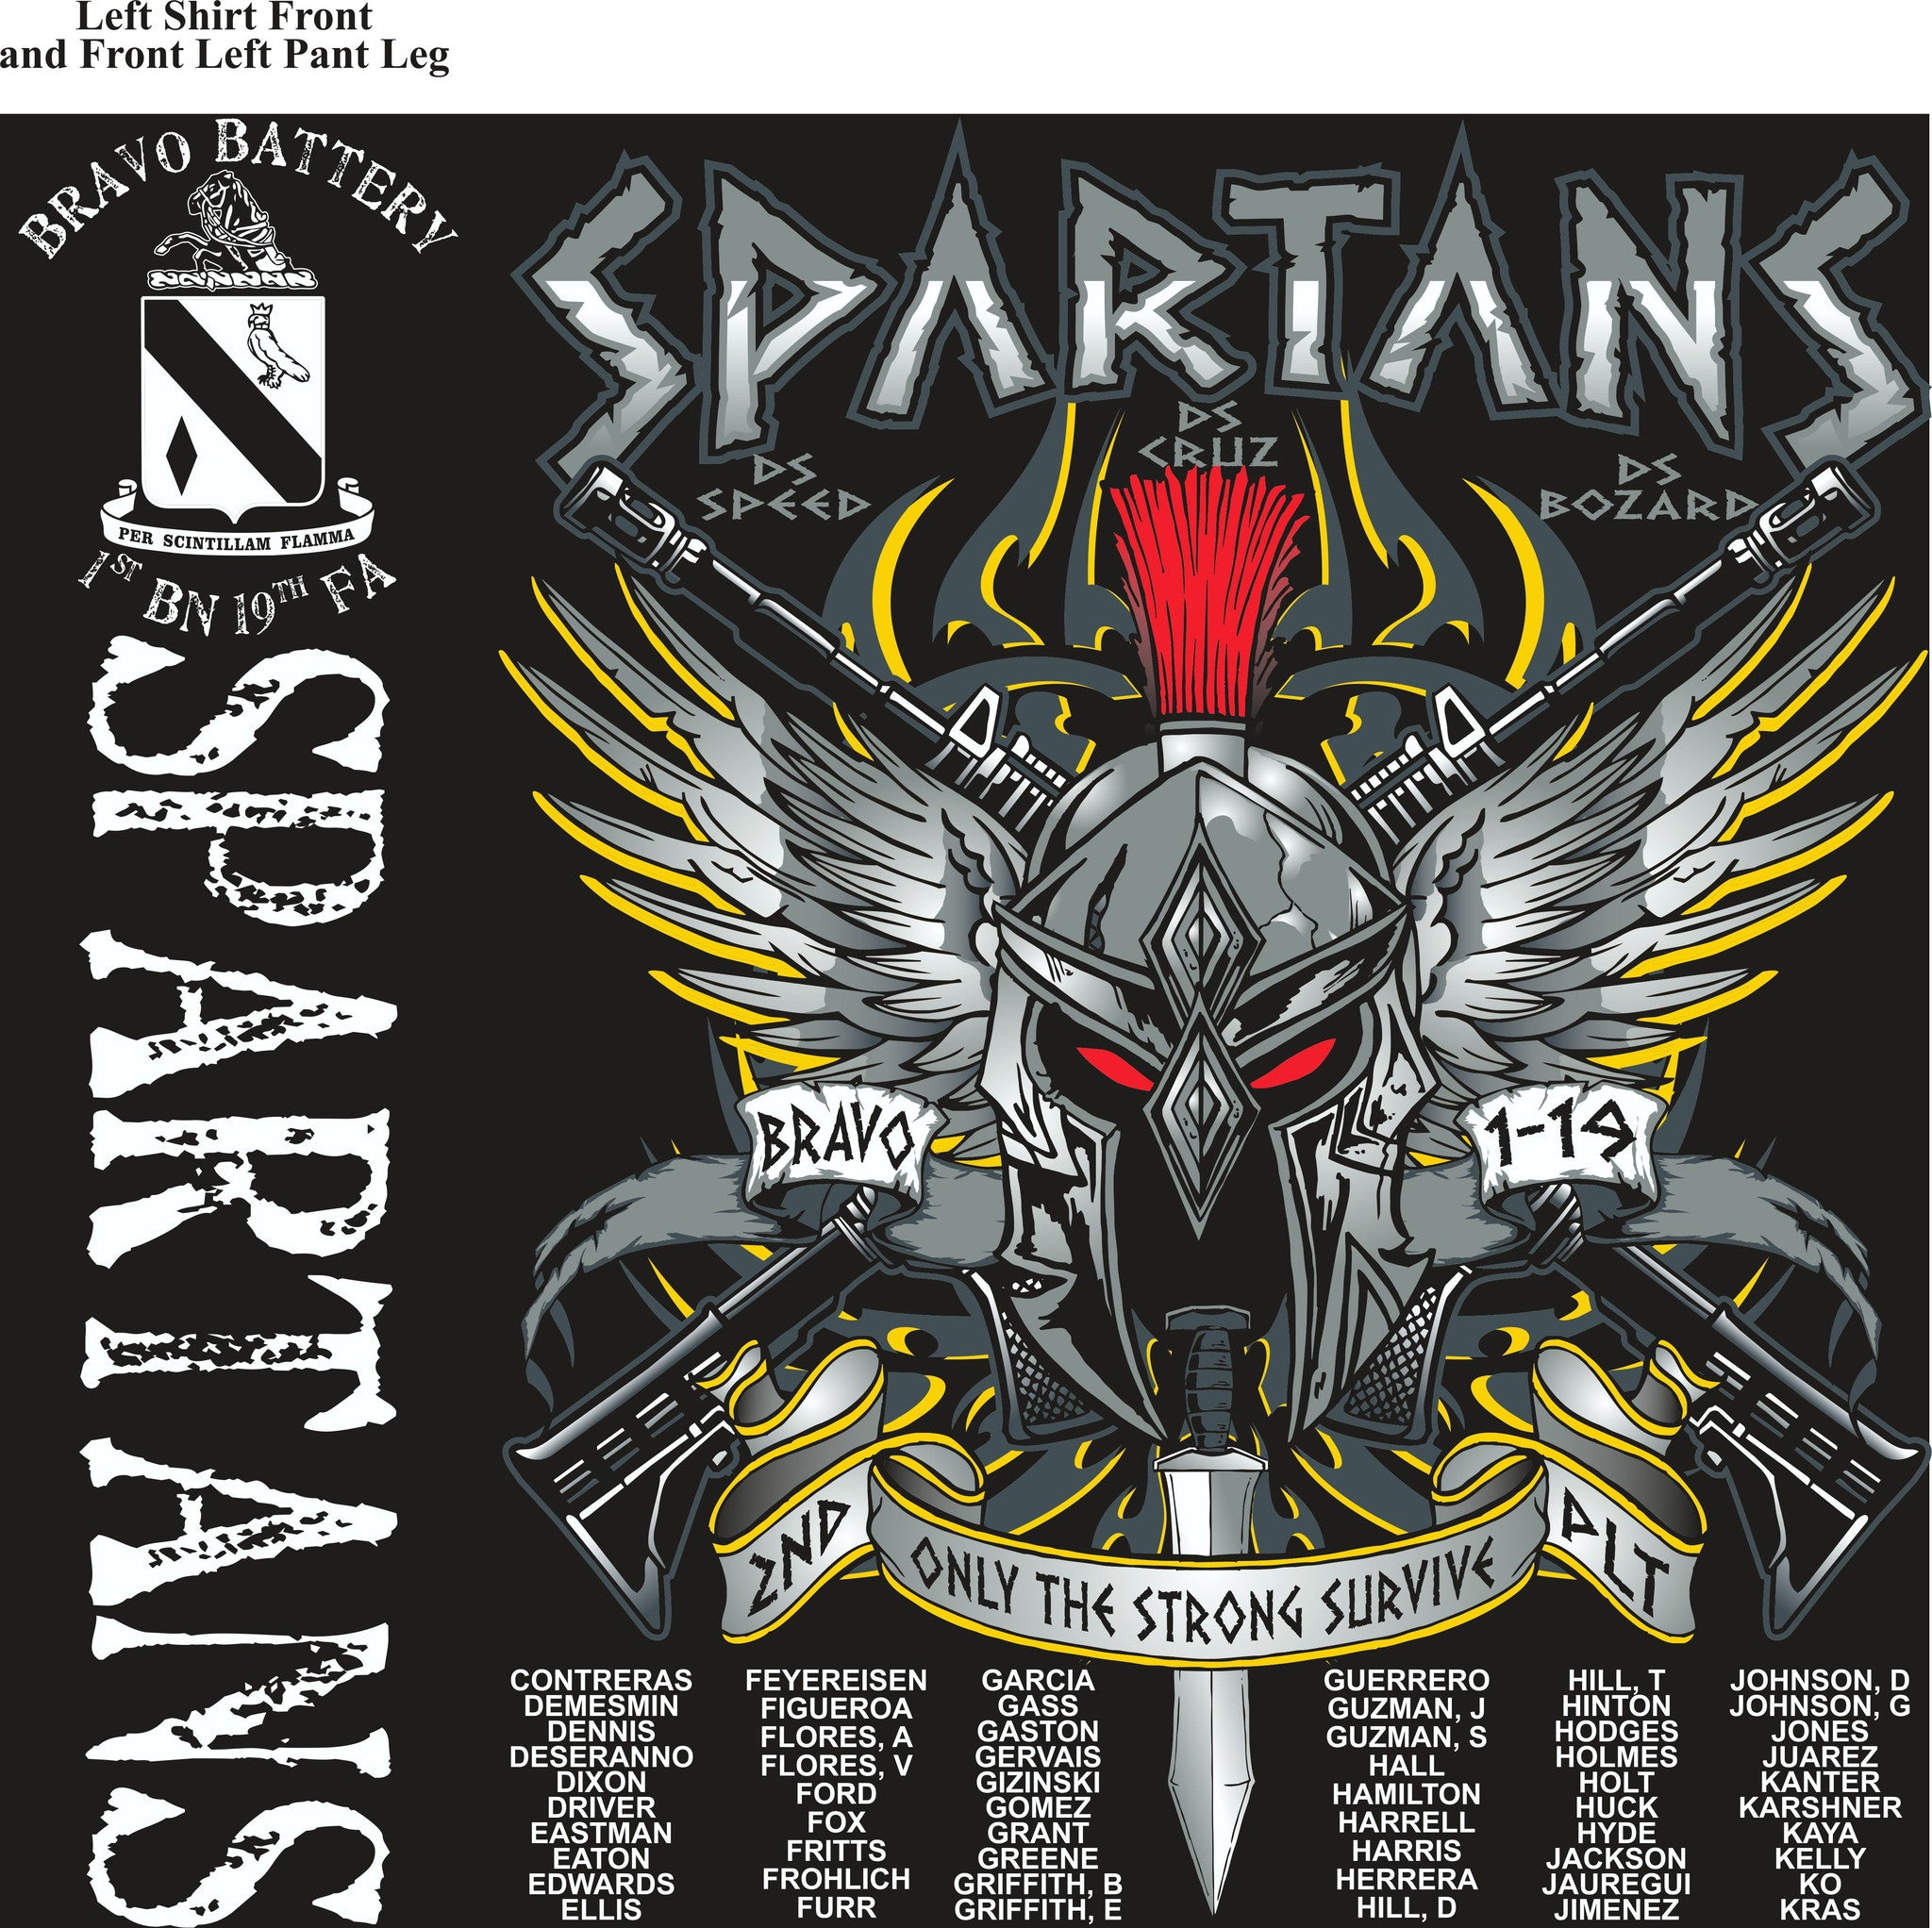 PLATOON SHIRTS (2nd generation print) BRAVO 1st 19th SPARTANS NOV 2016